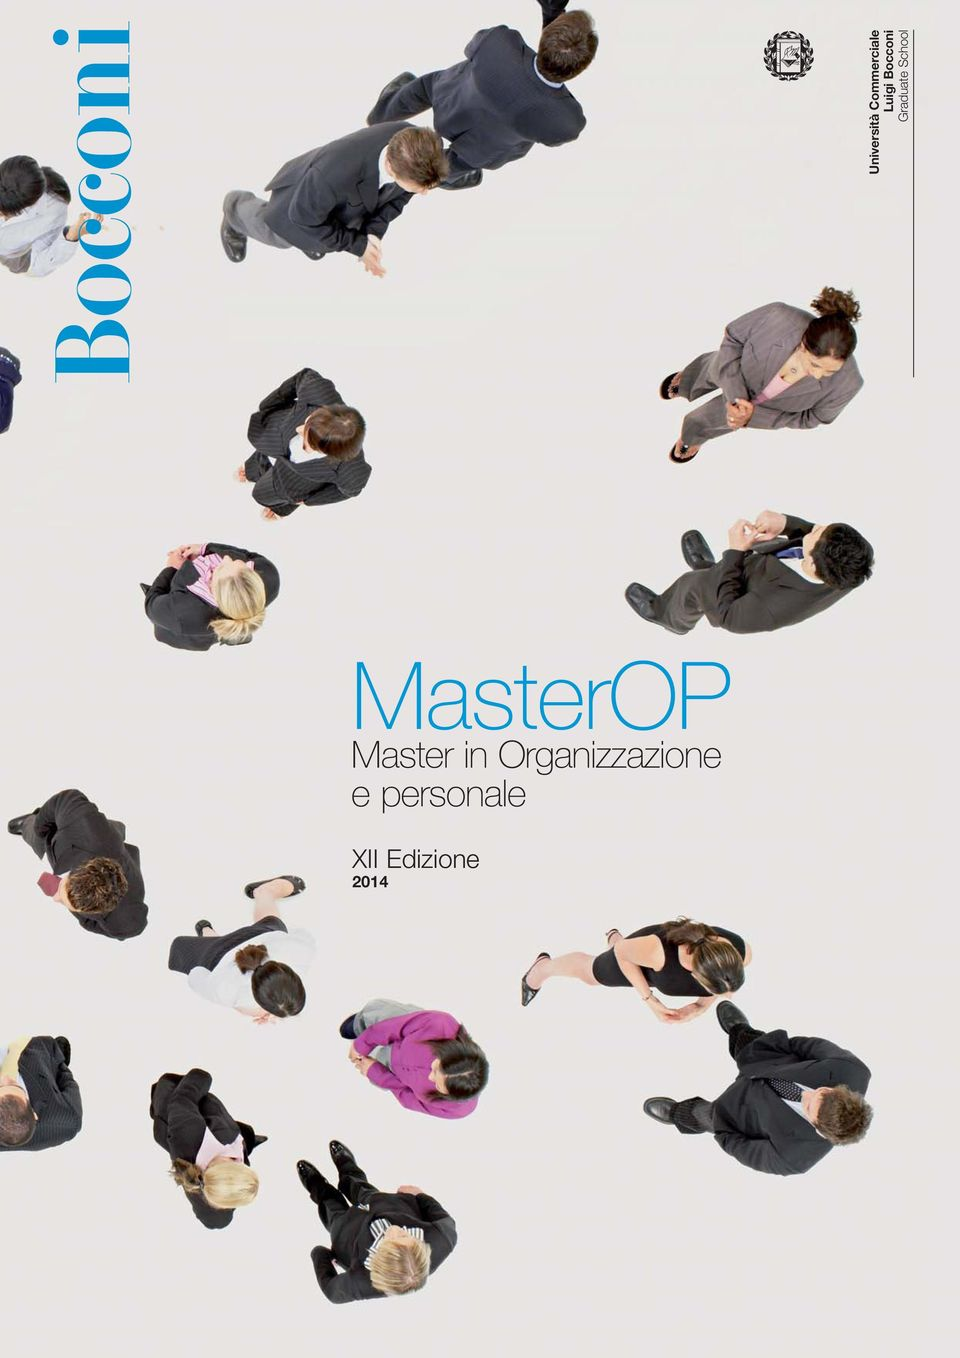 MasterOP Master in